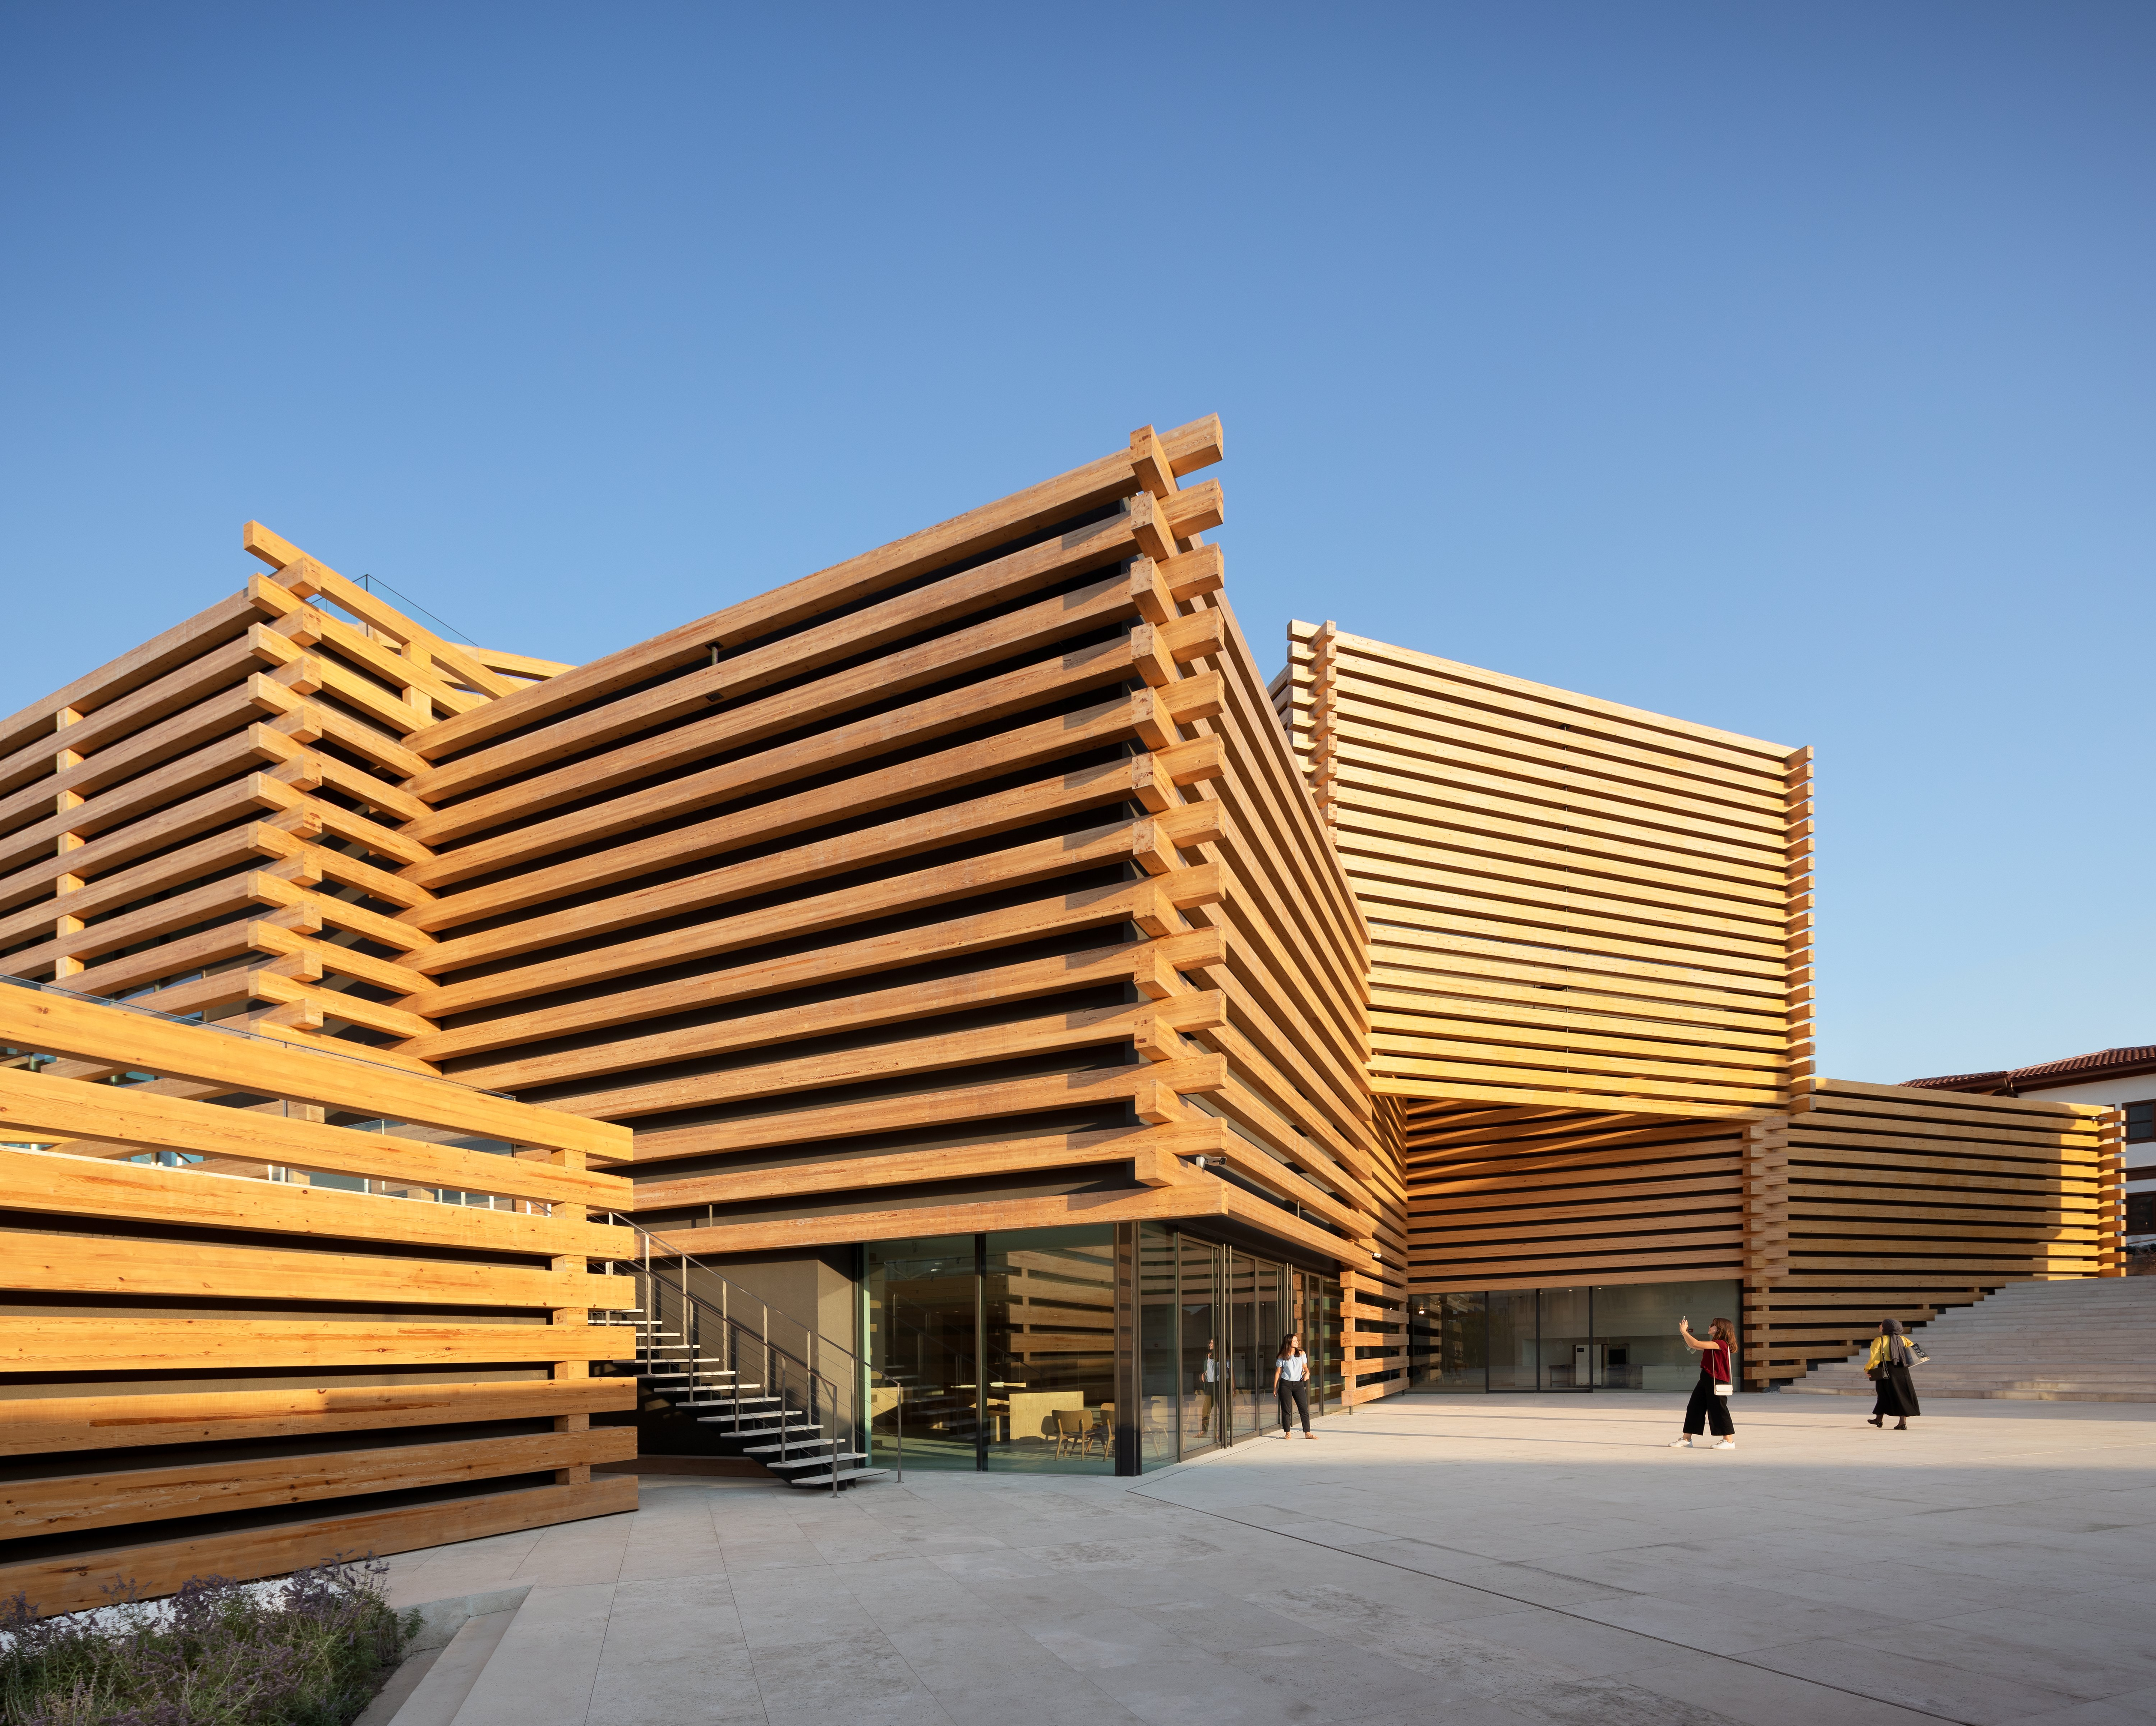 A large golden building made from intersecting wooden volumes. each looking like stacked beams.